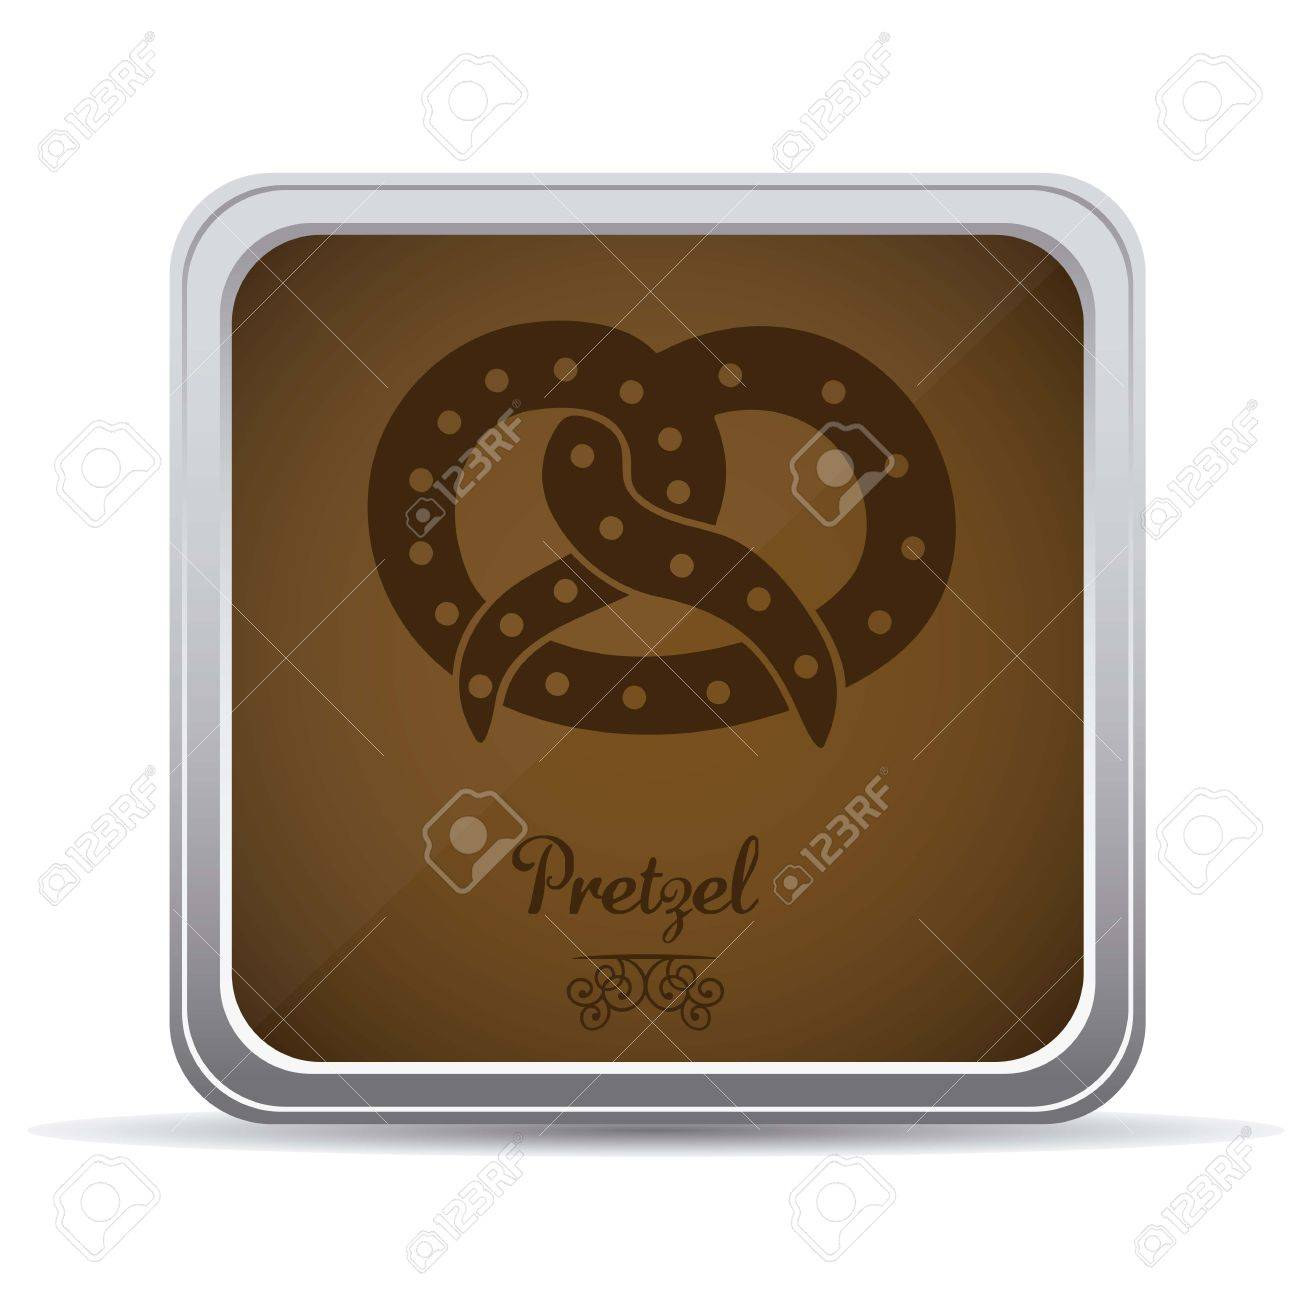 Illustration of pretzel and food, bakery icon, vector illustration Stock Vector - 17001806